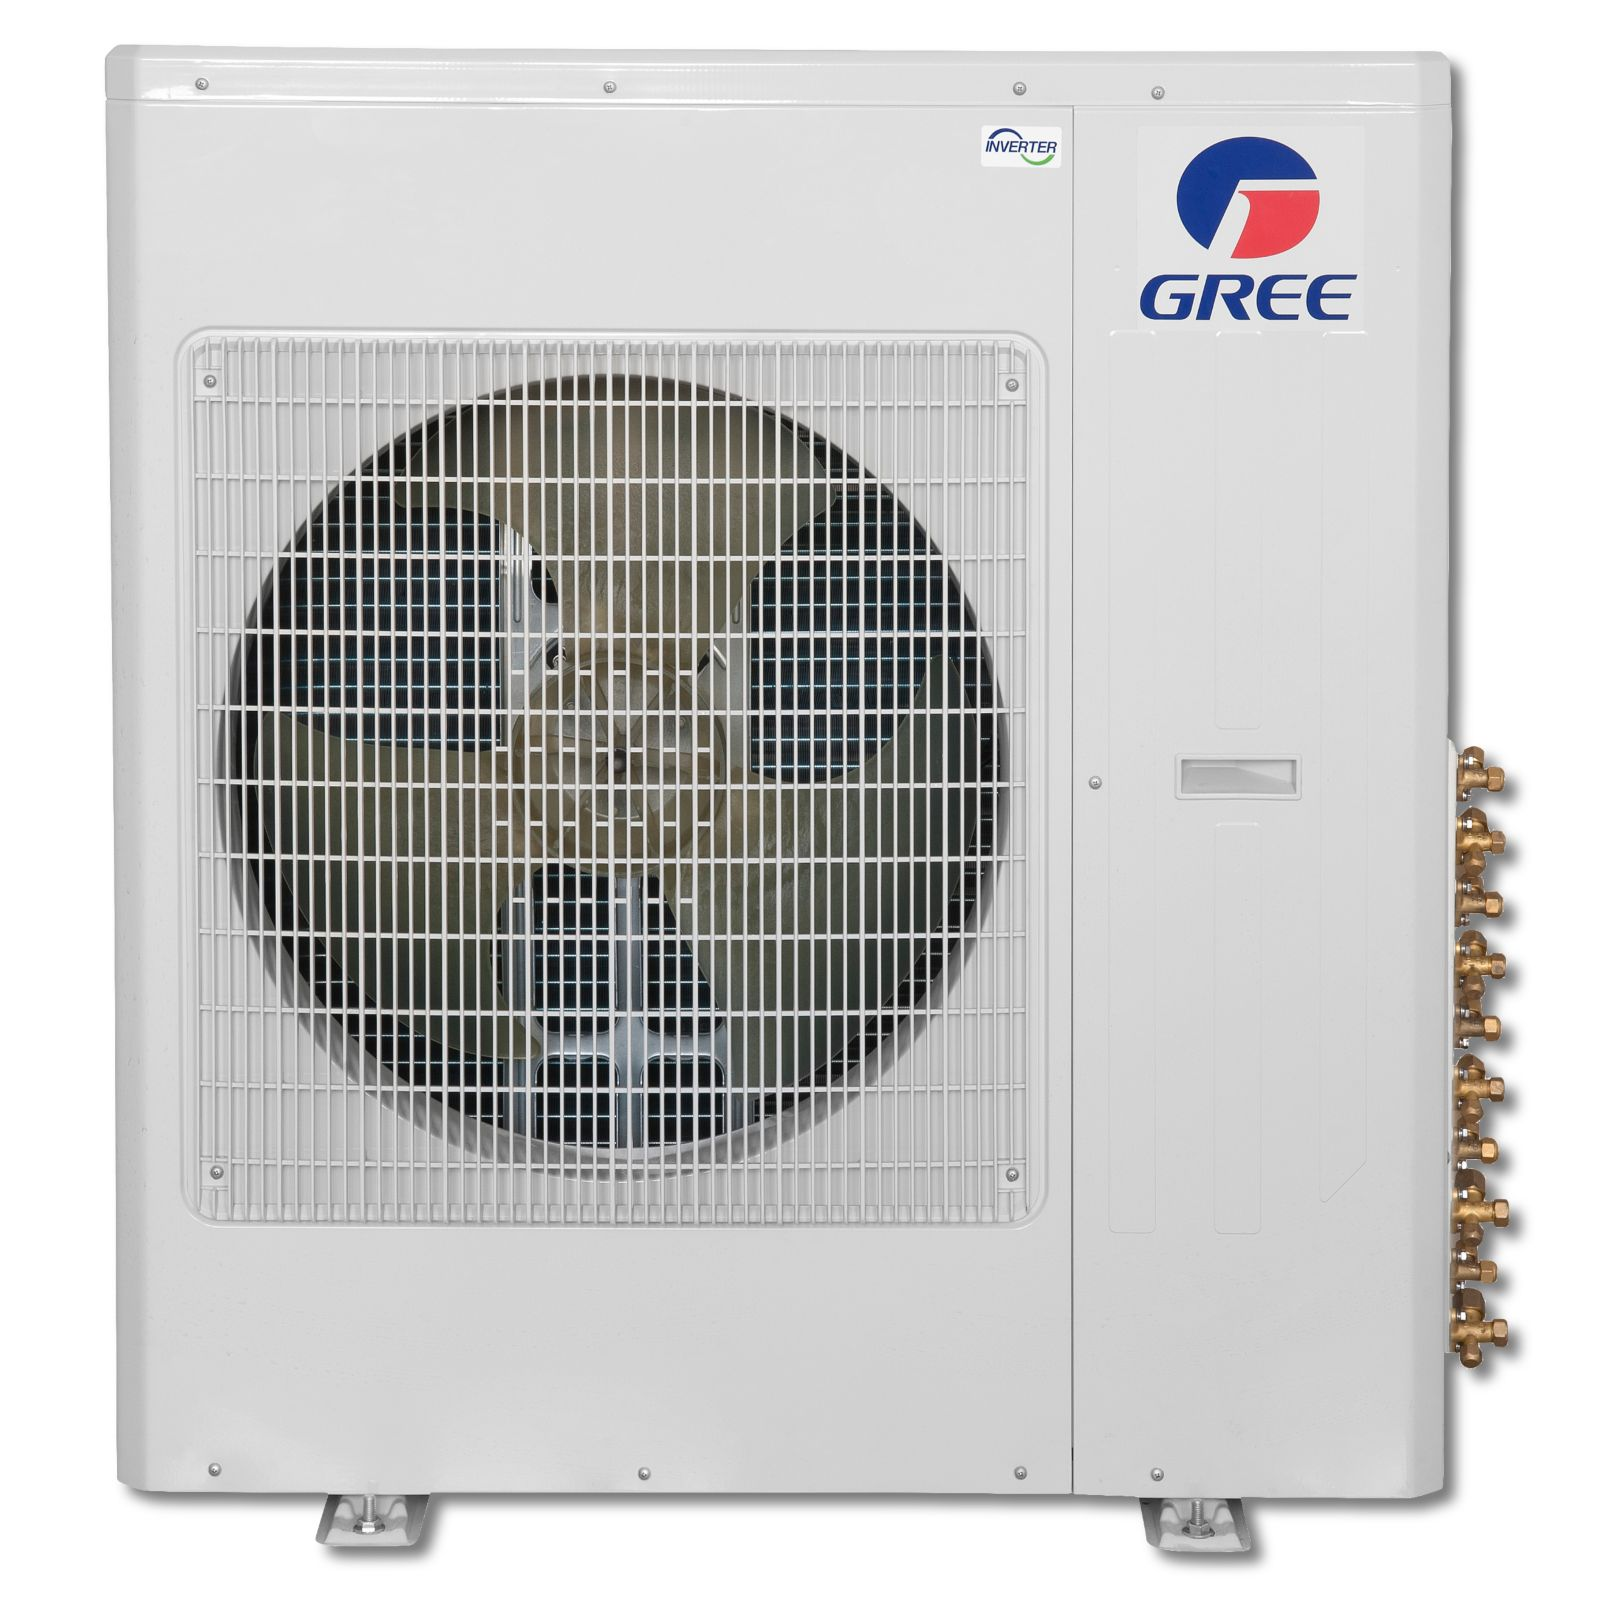 GREE MULTI36HP230V1AO - 3 Ton 16 SEER EVO+ Multi Ductless Mini-Split Heat Pump 208-230 V